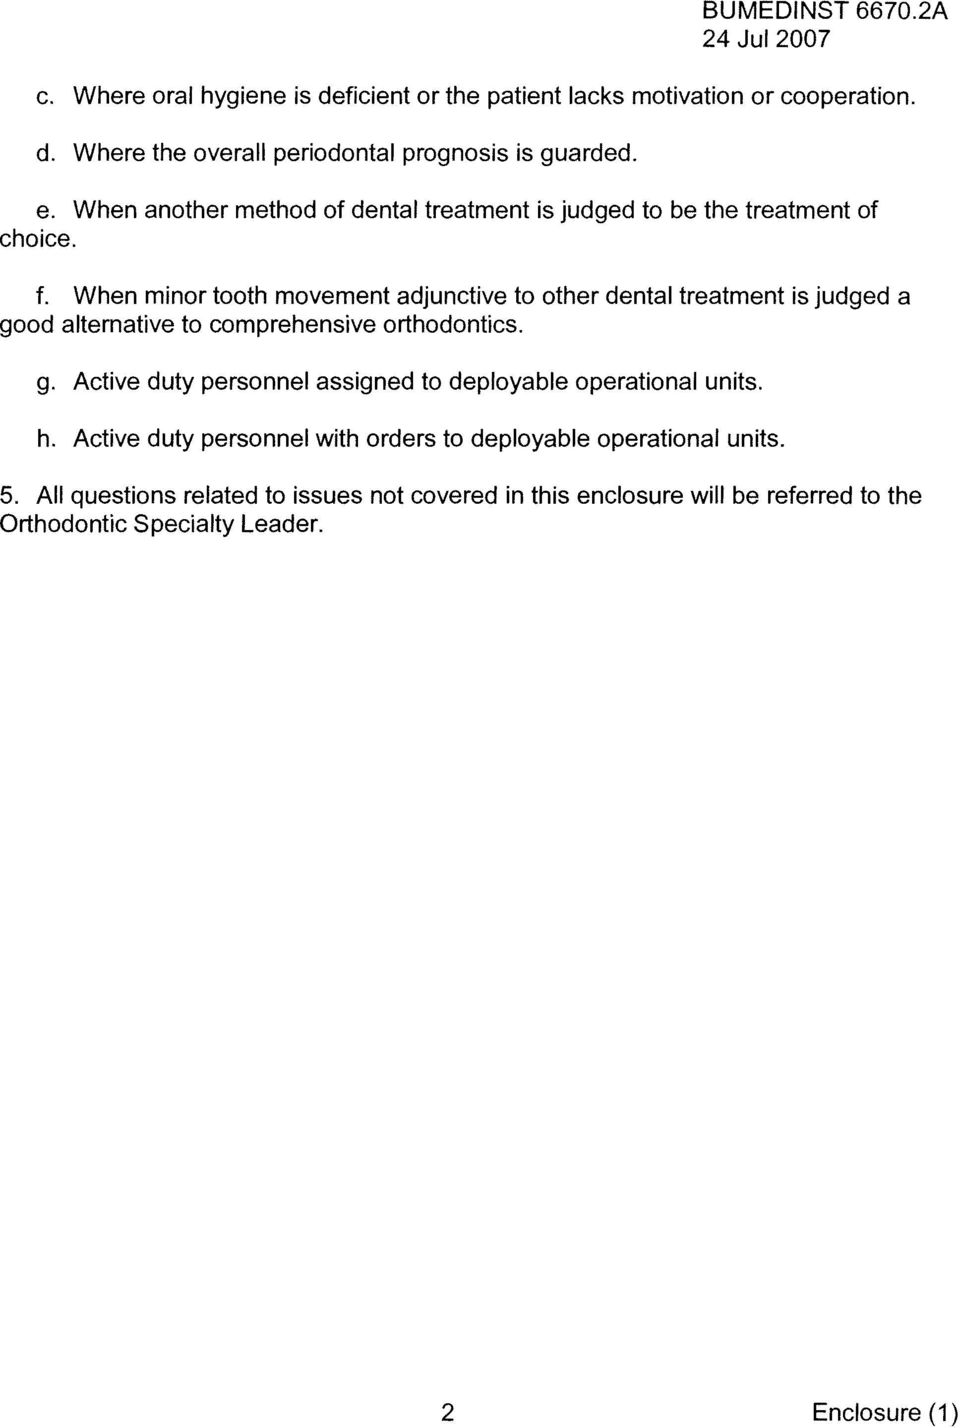 When minor tooth movement adjunctive to other dental treatment is judged a good alternative to comprehensive orthodontics. g. Active duty personnel assigned to deployable operational units.